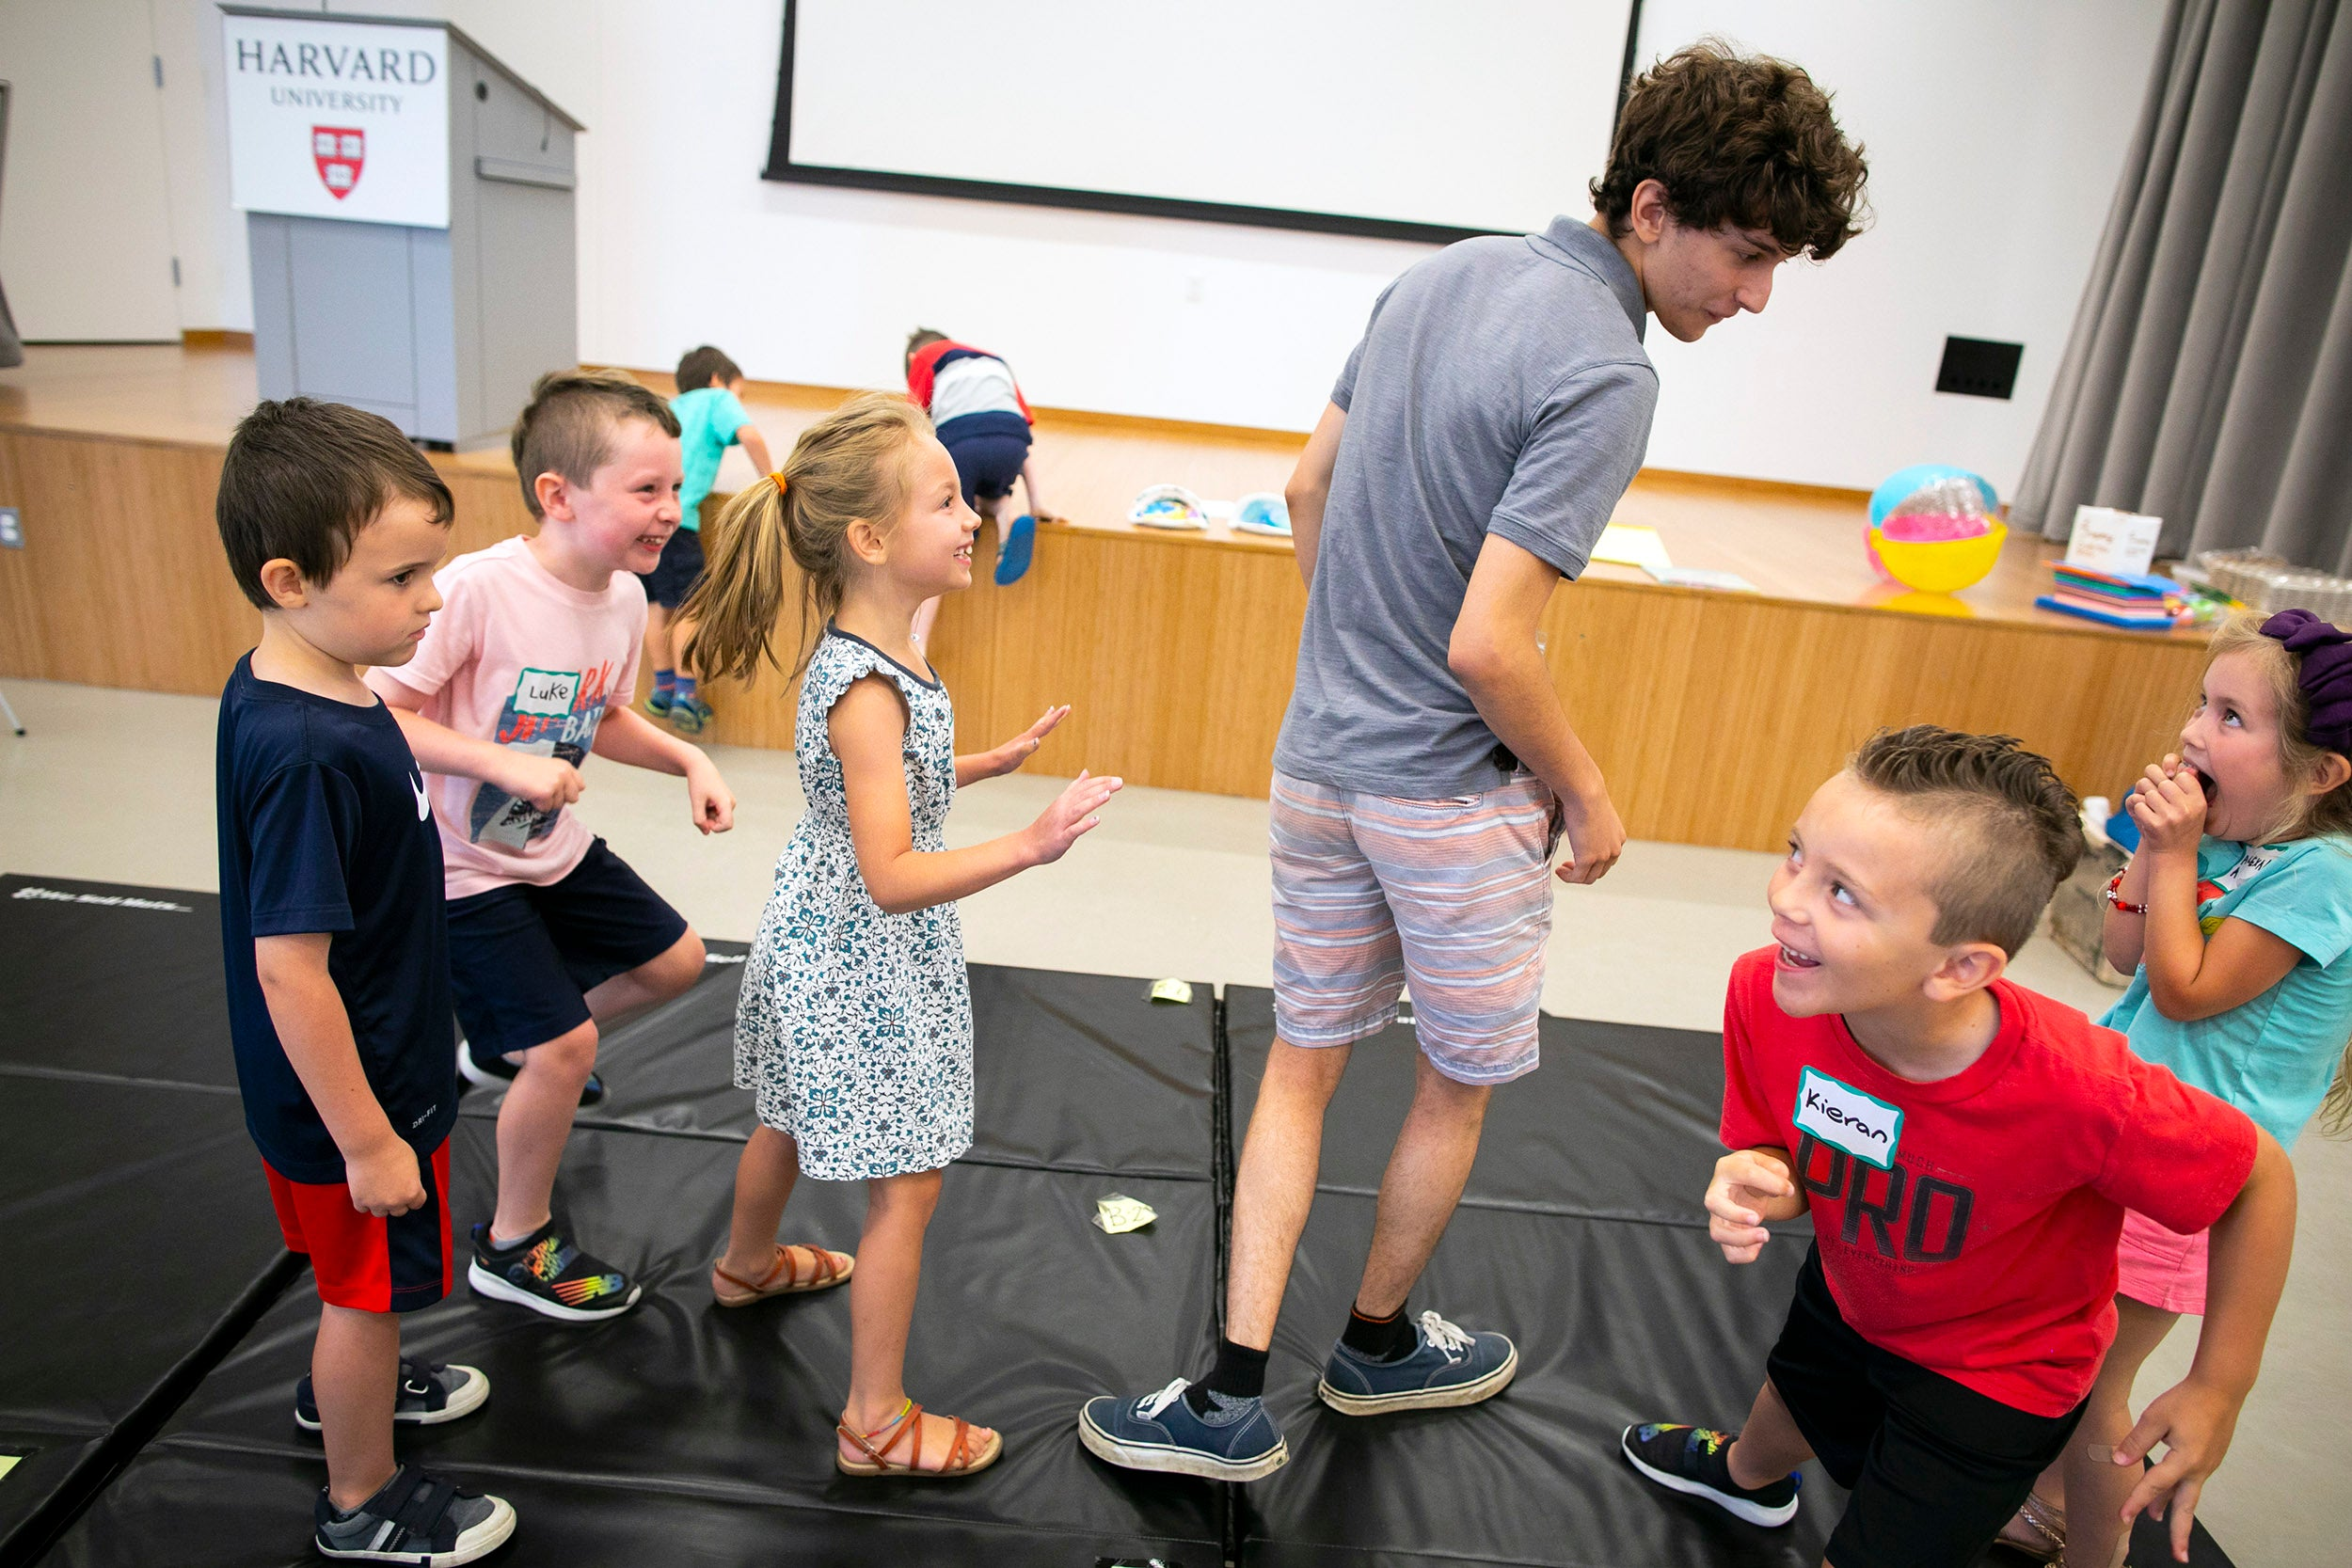 James DiSandro plays with children during acting class.